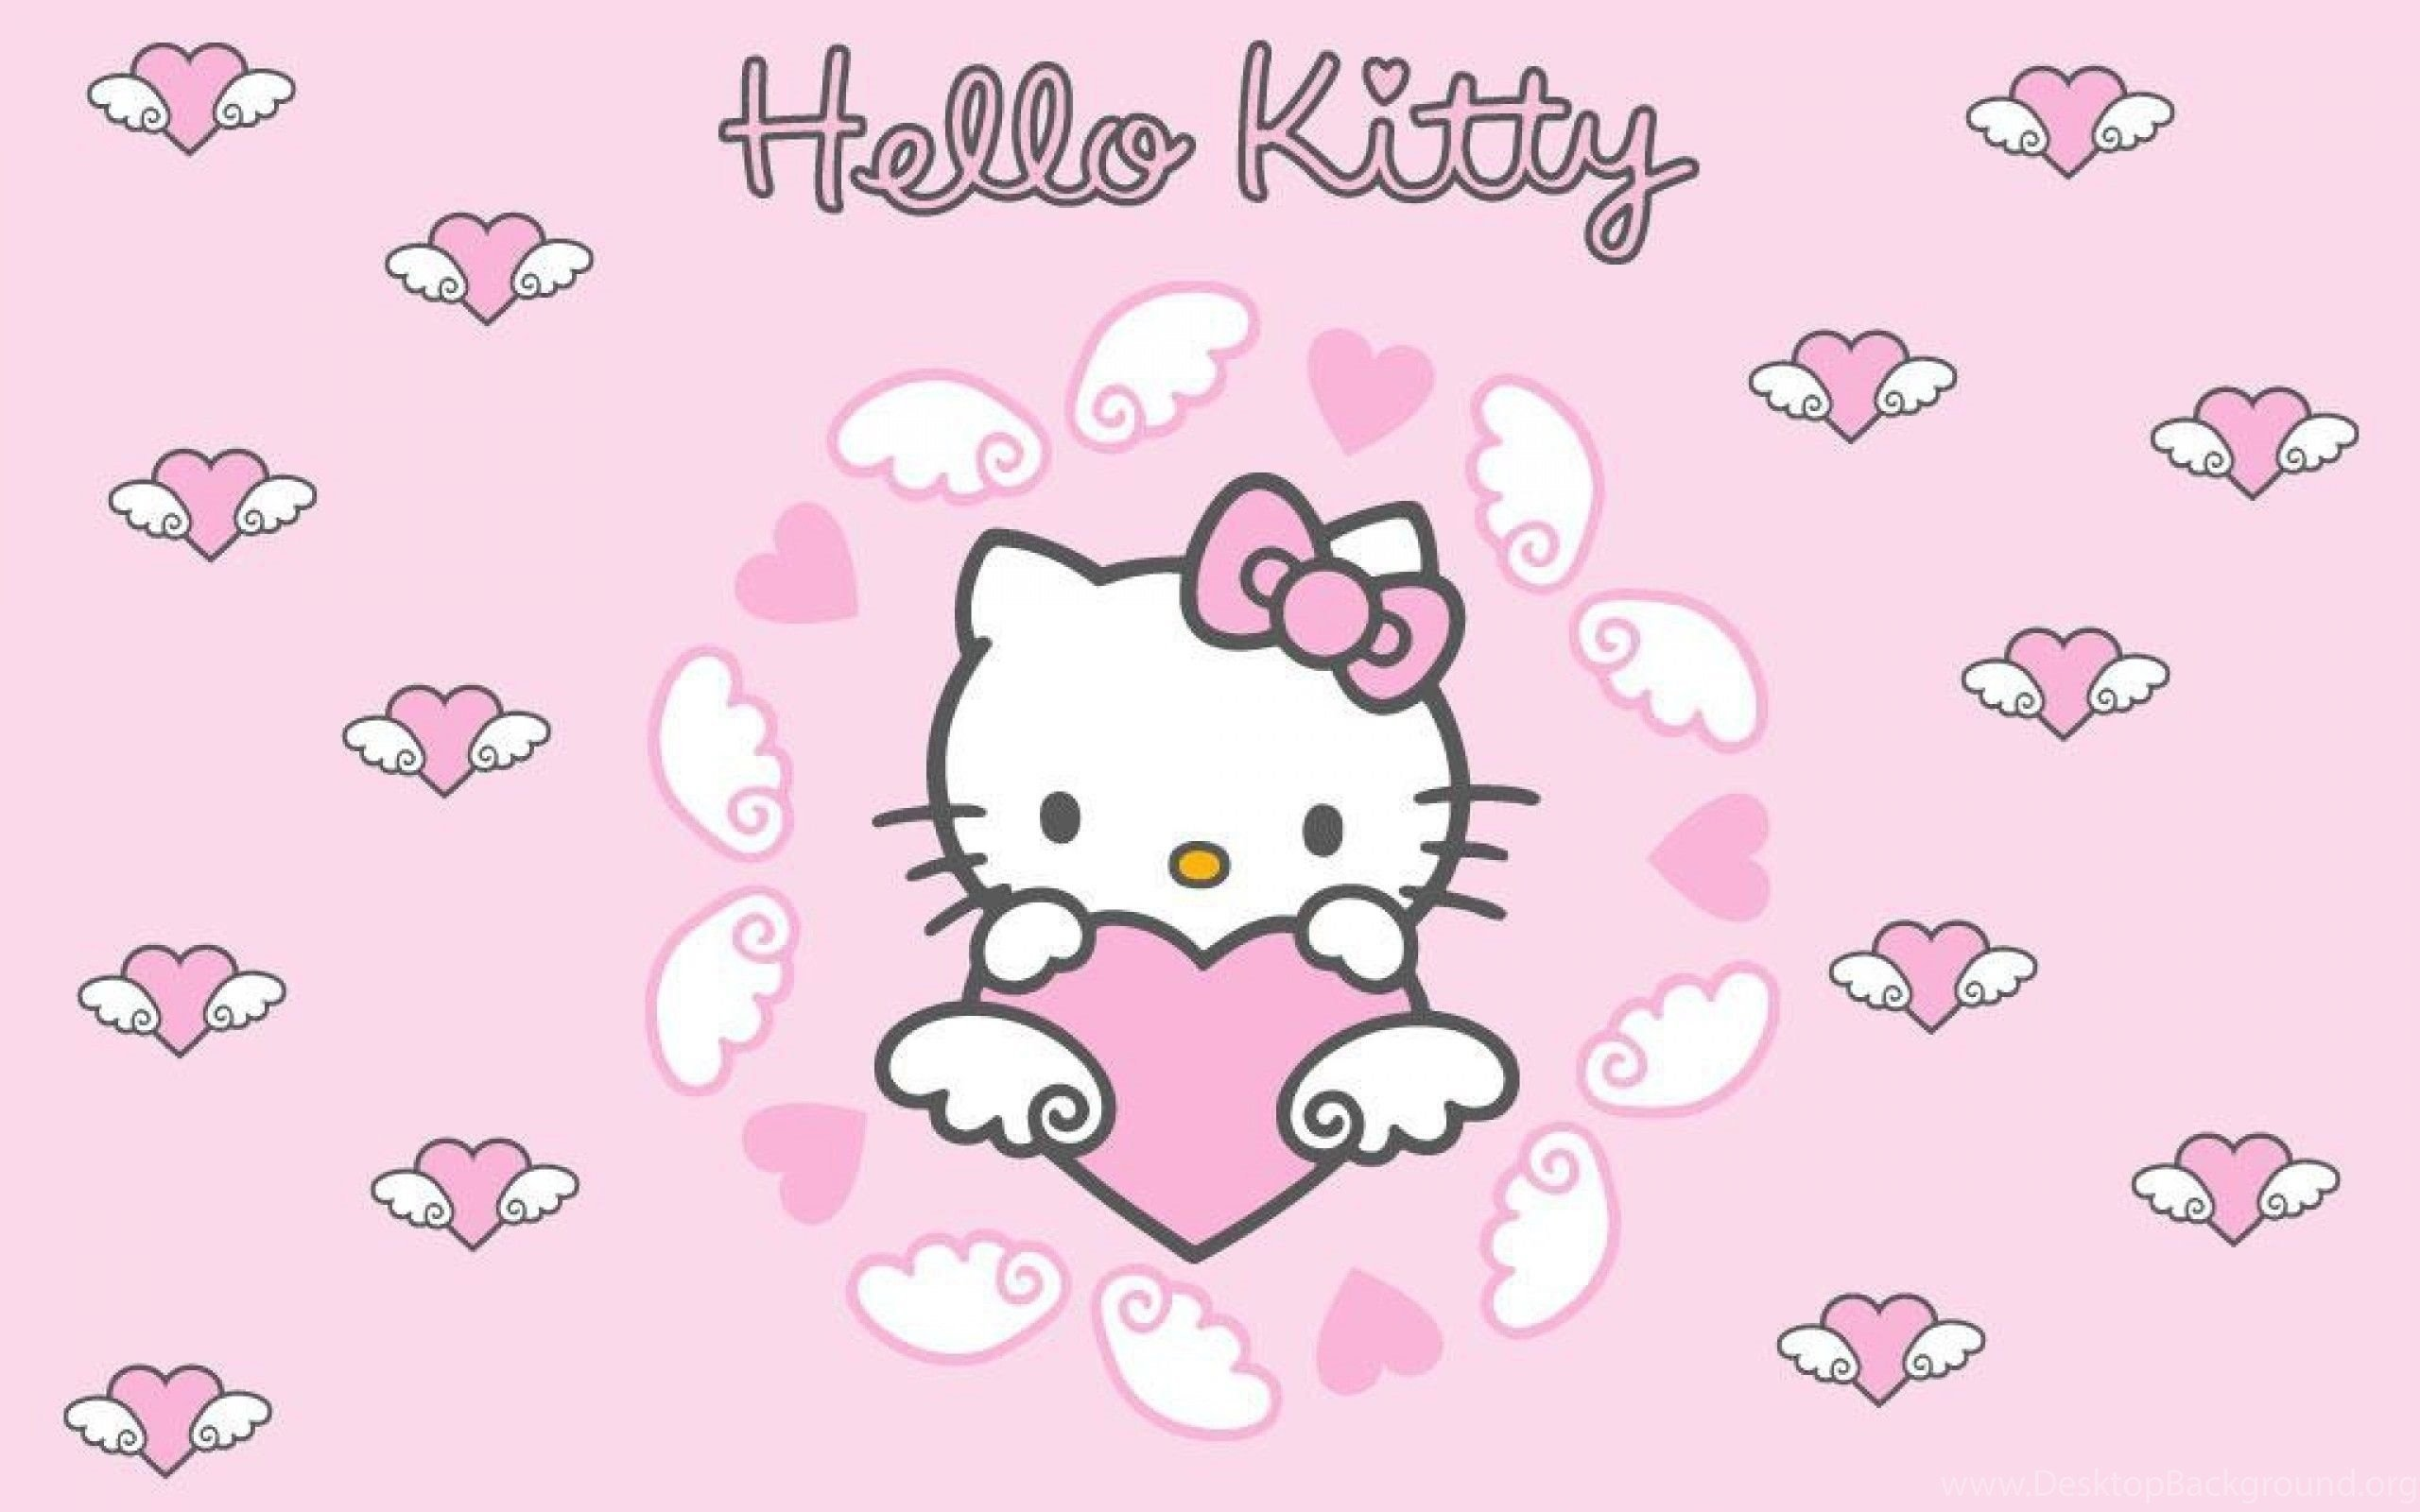 Hello Kitty Winter Wallpaper 69 images 2560x1600